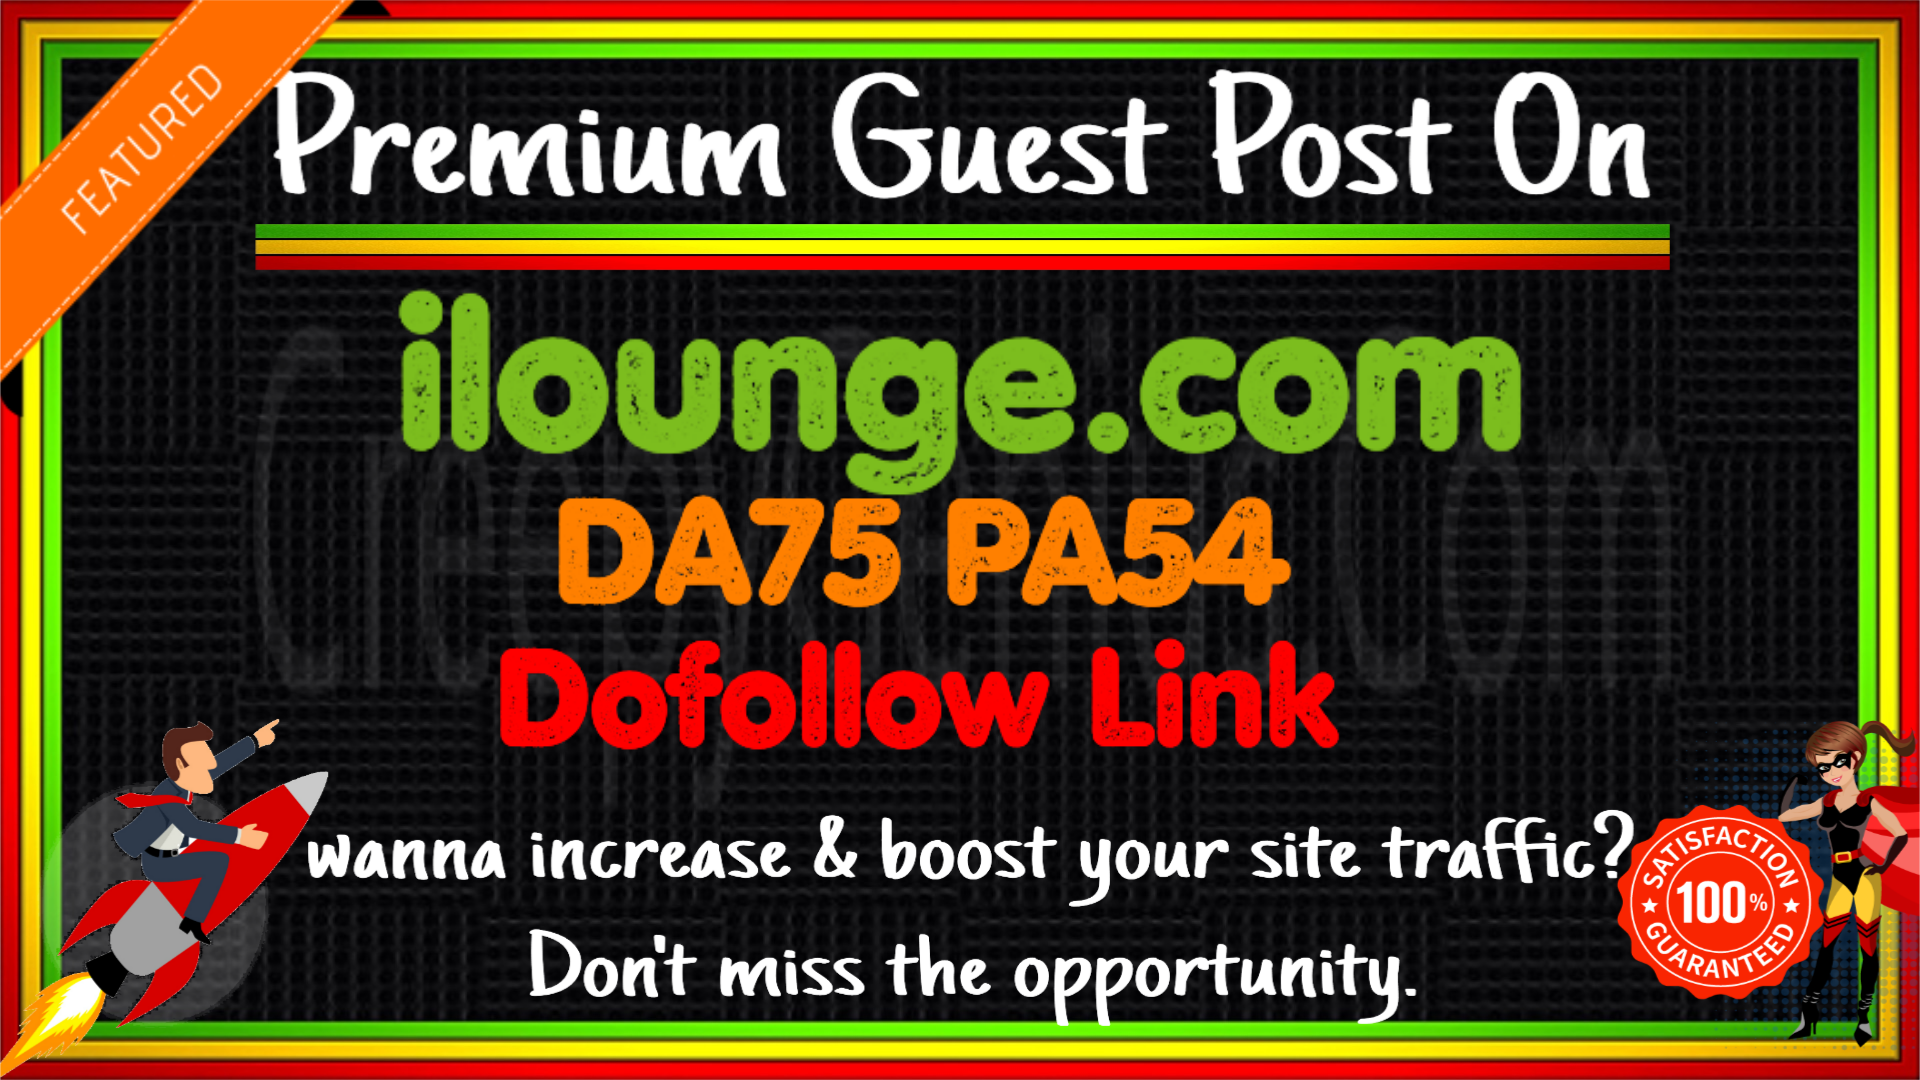 Write & Publish A Guest Post On ilounge. com DA75 PA54 with DF